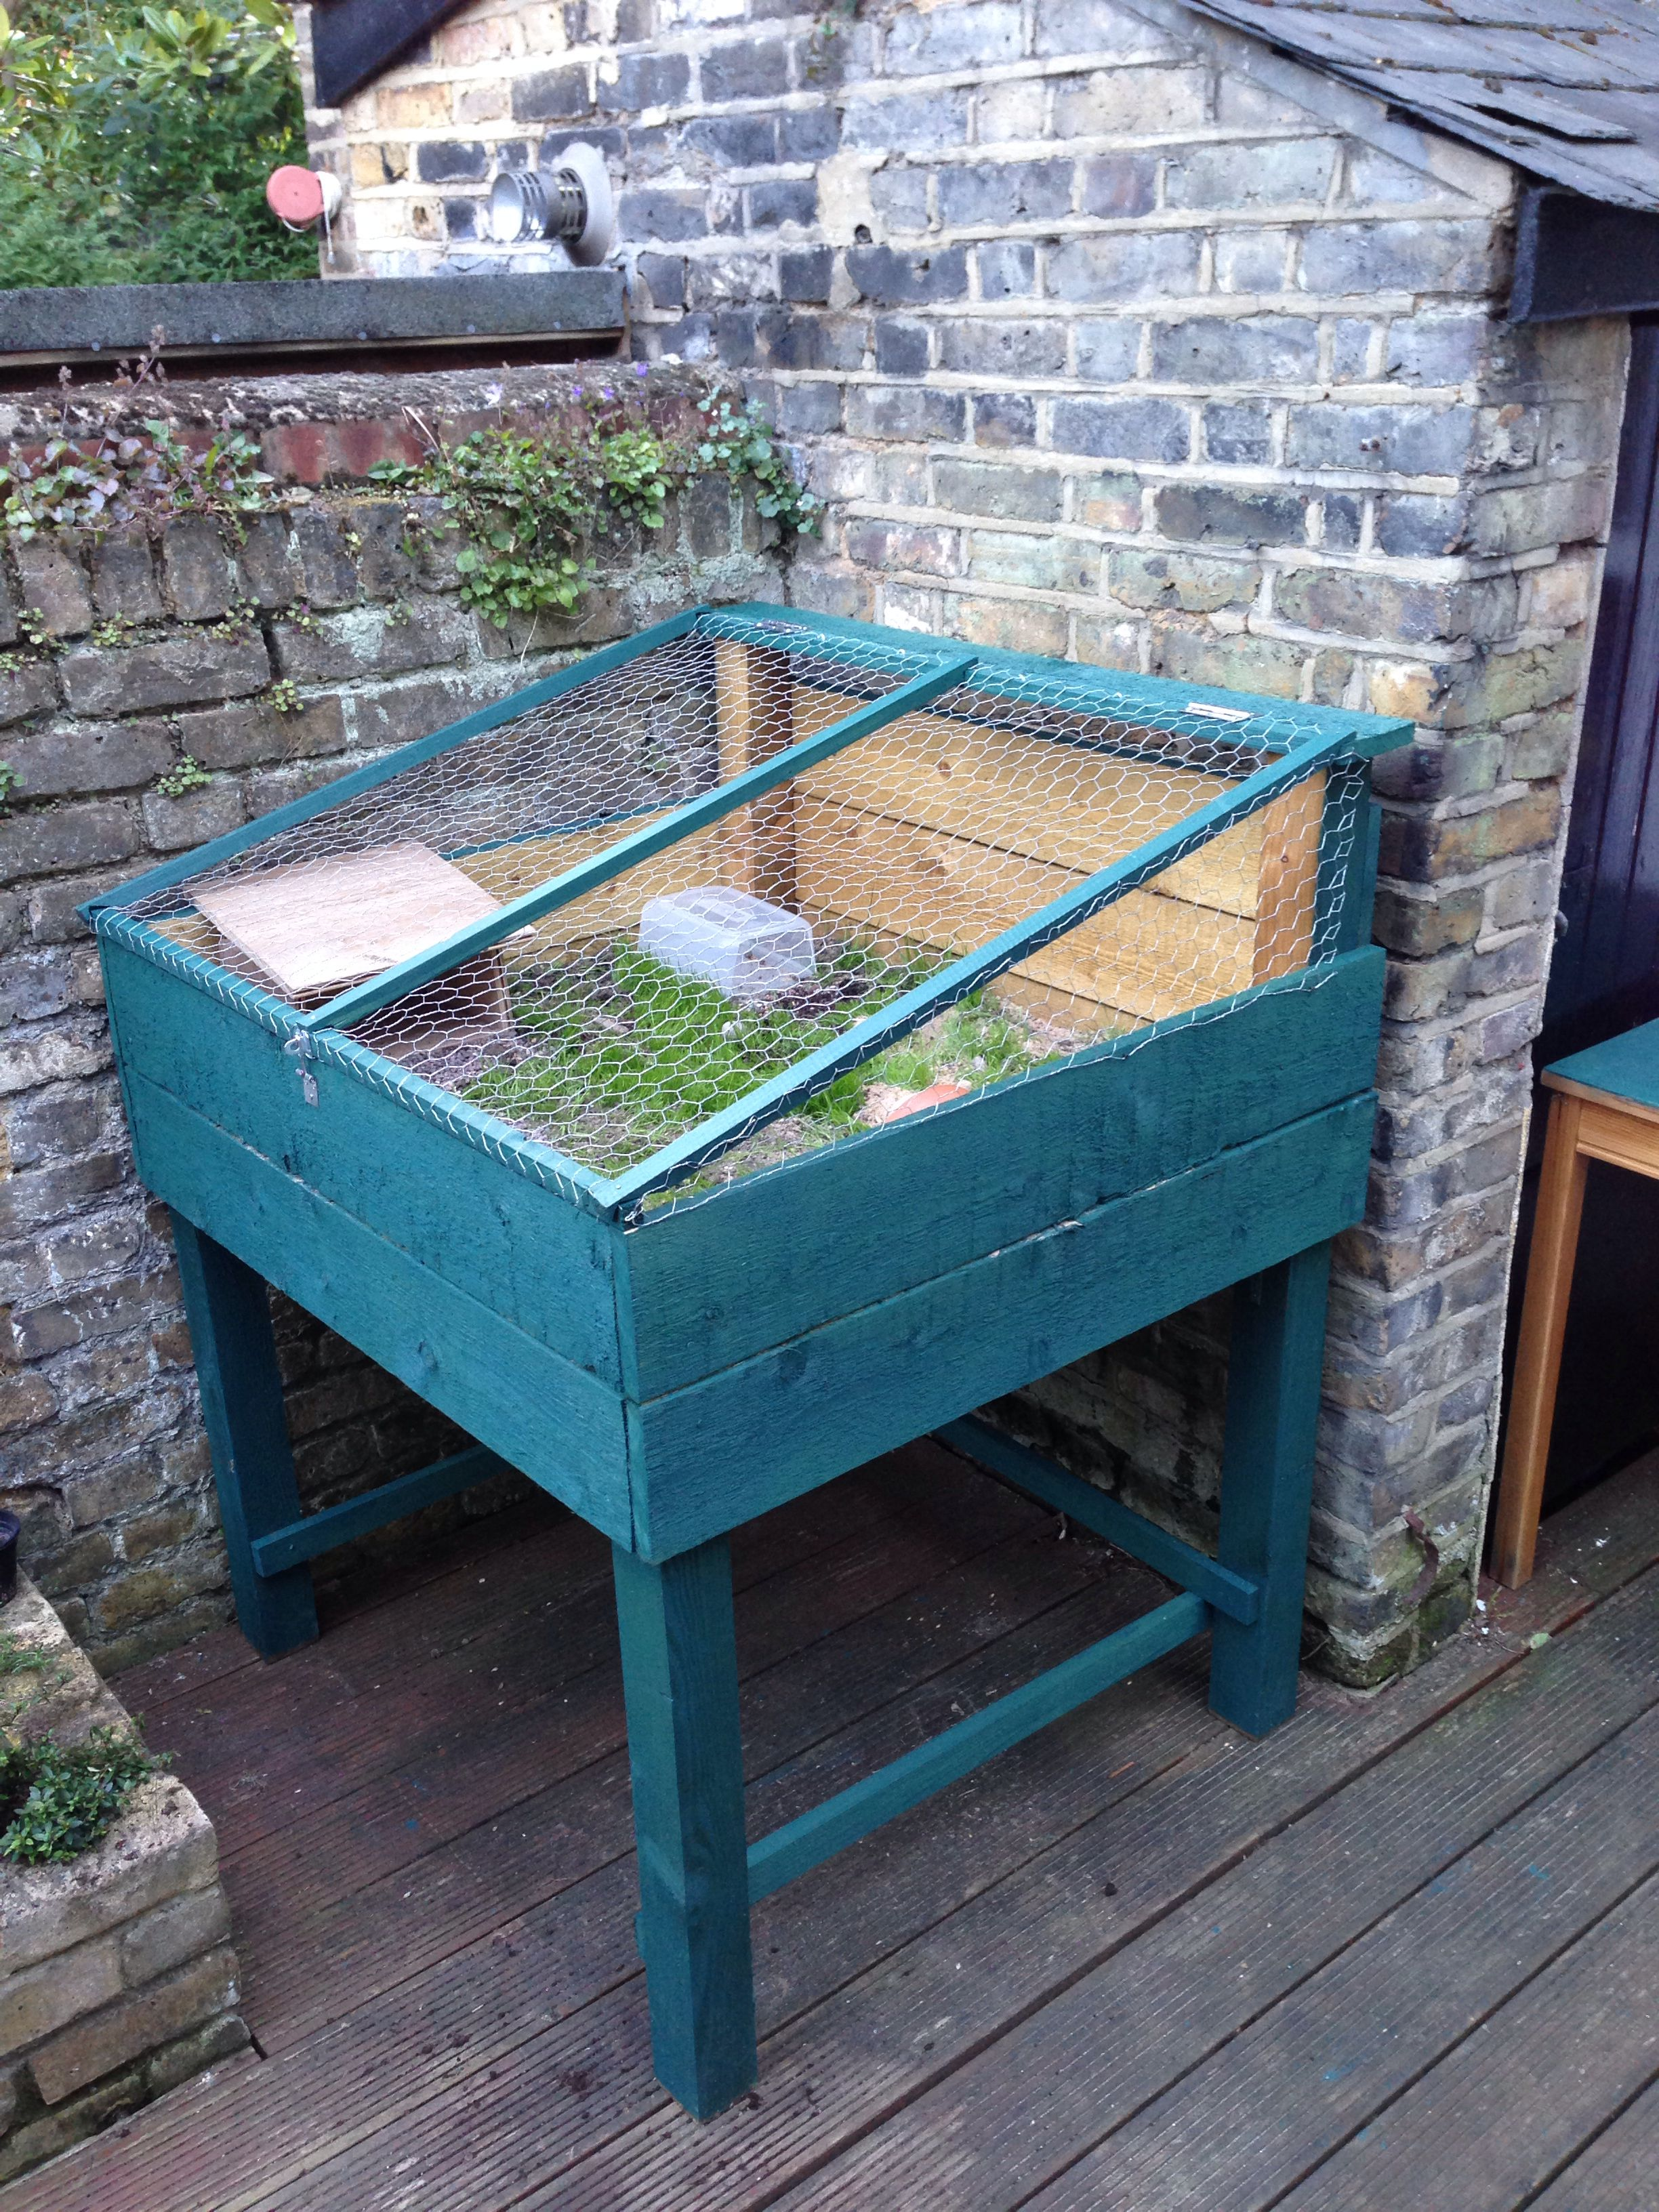 Outdoor tortoise enclosure!...would be great to build something similar for the lizards to go outside in the summer